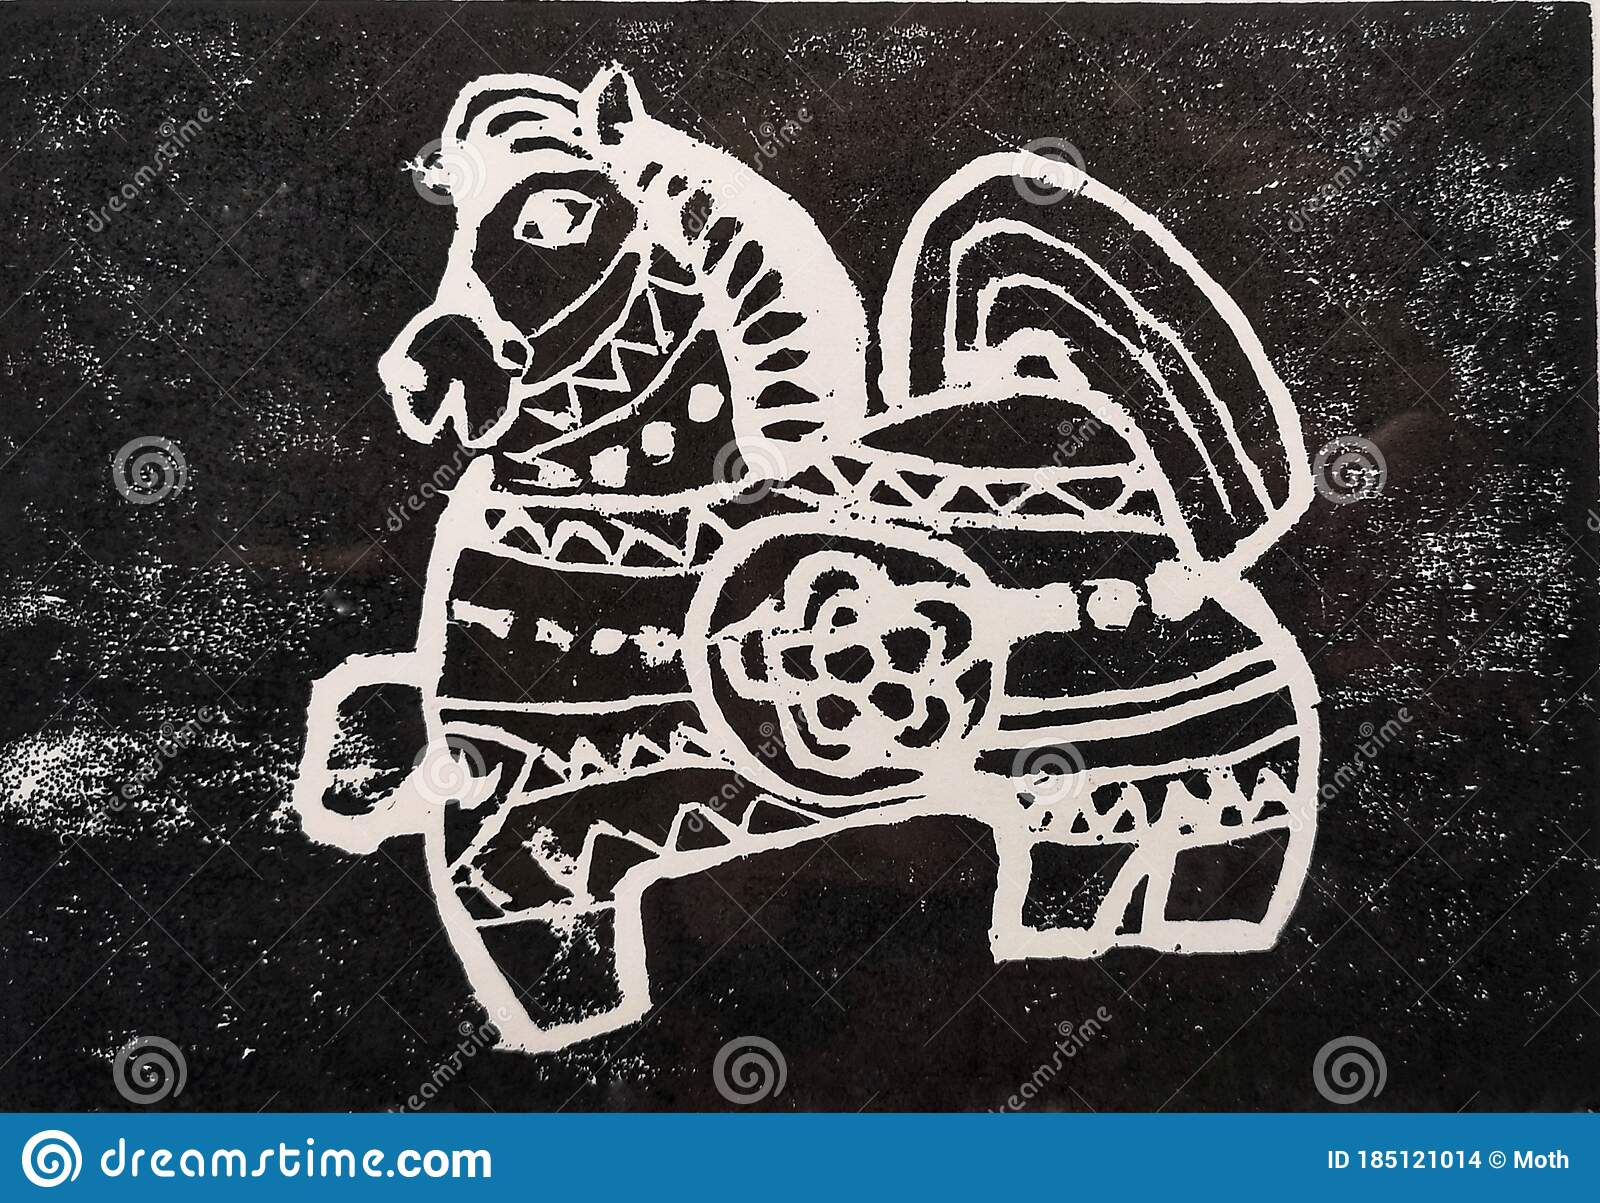 2 359 Art Chinese Horse Photos Free Royalty Free Stock Photos From Dreamstime